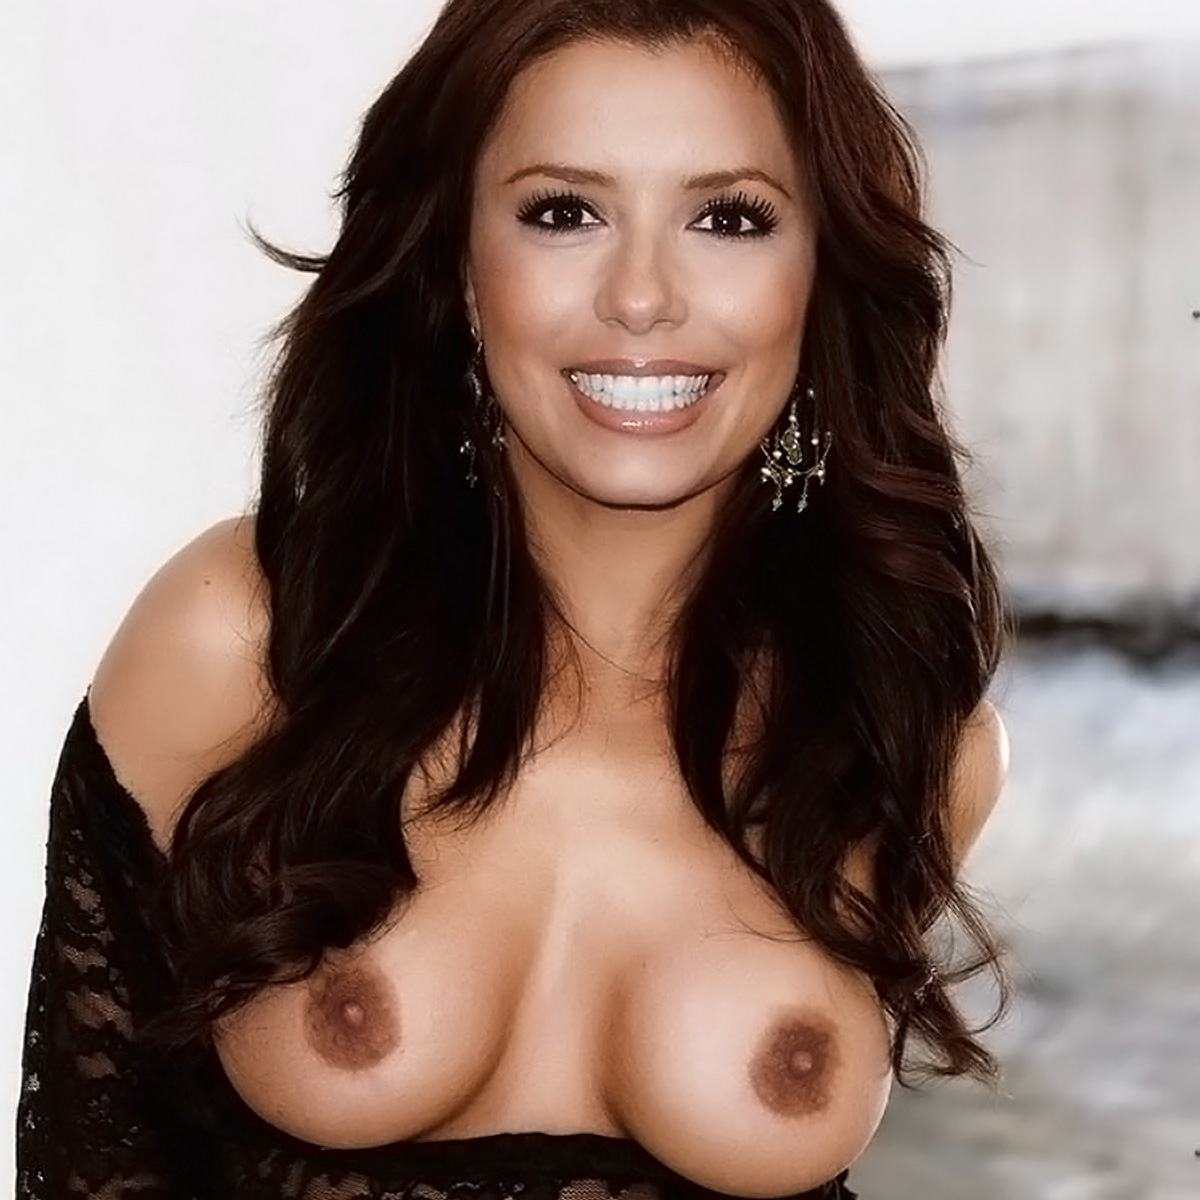 Eva longoria naked topless nude pussy adult archive